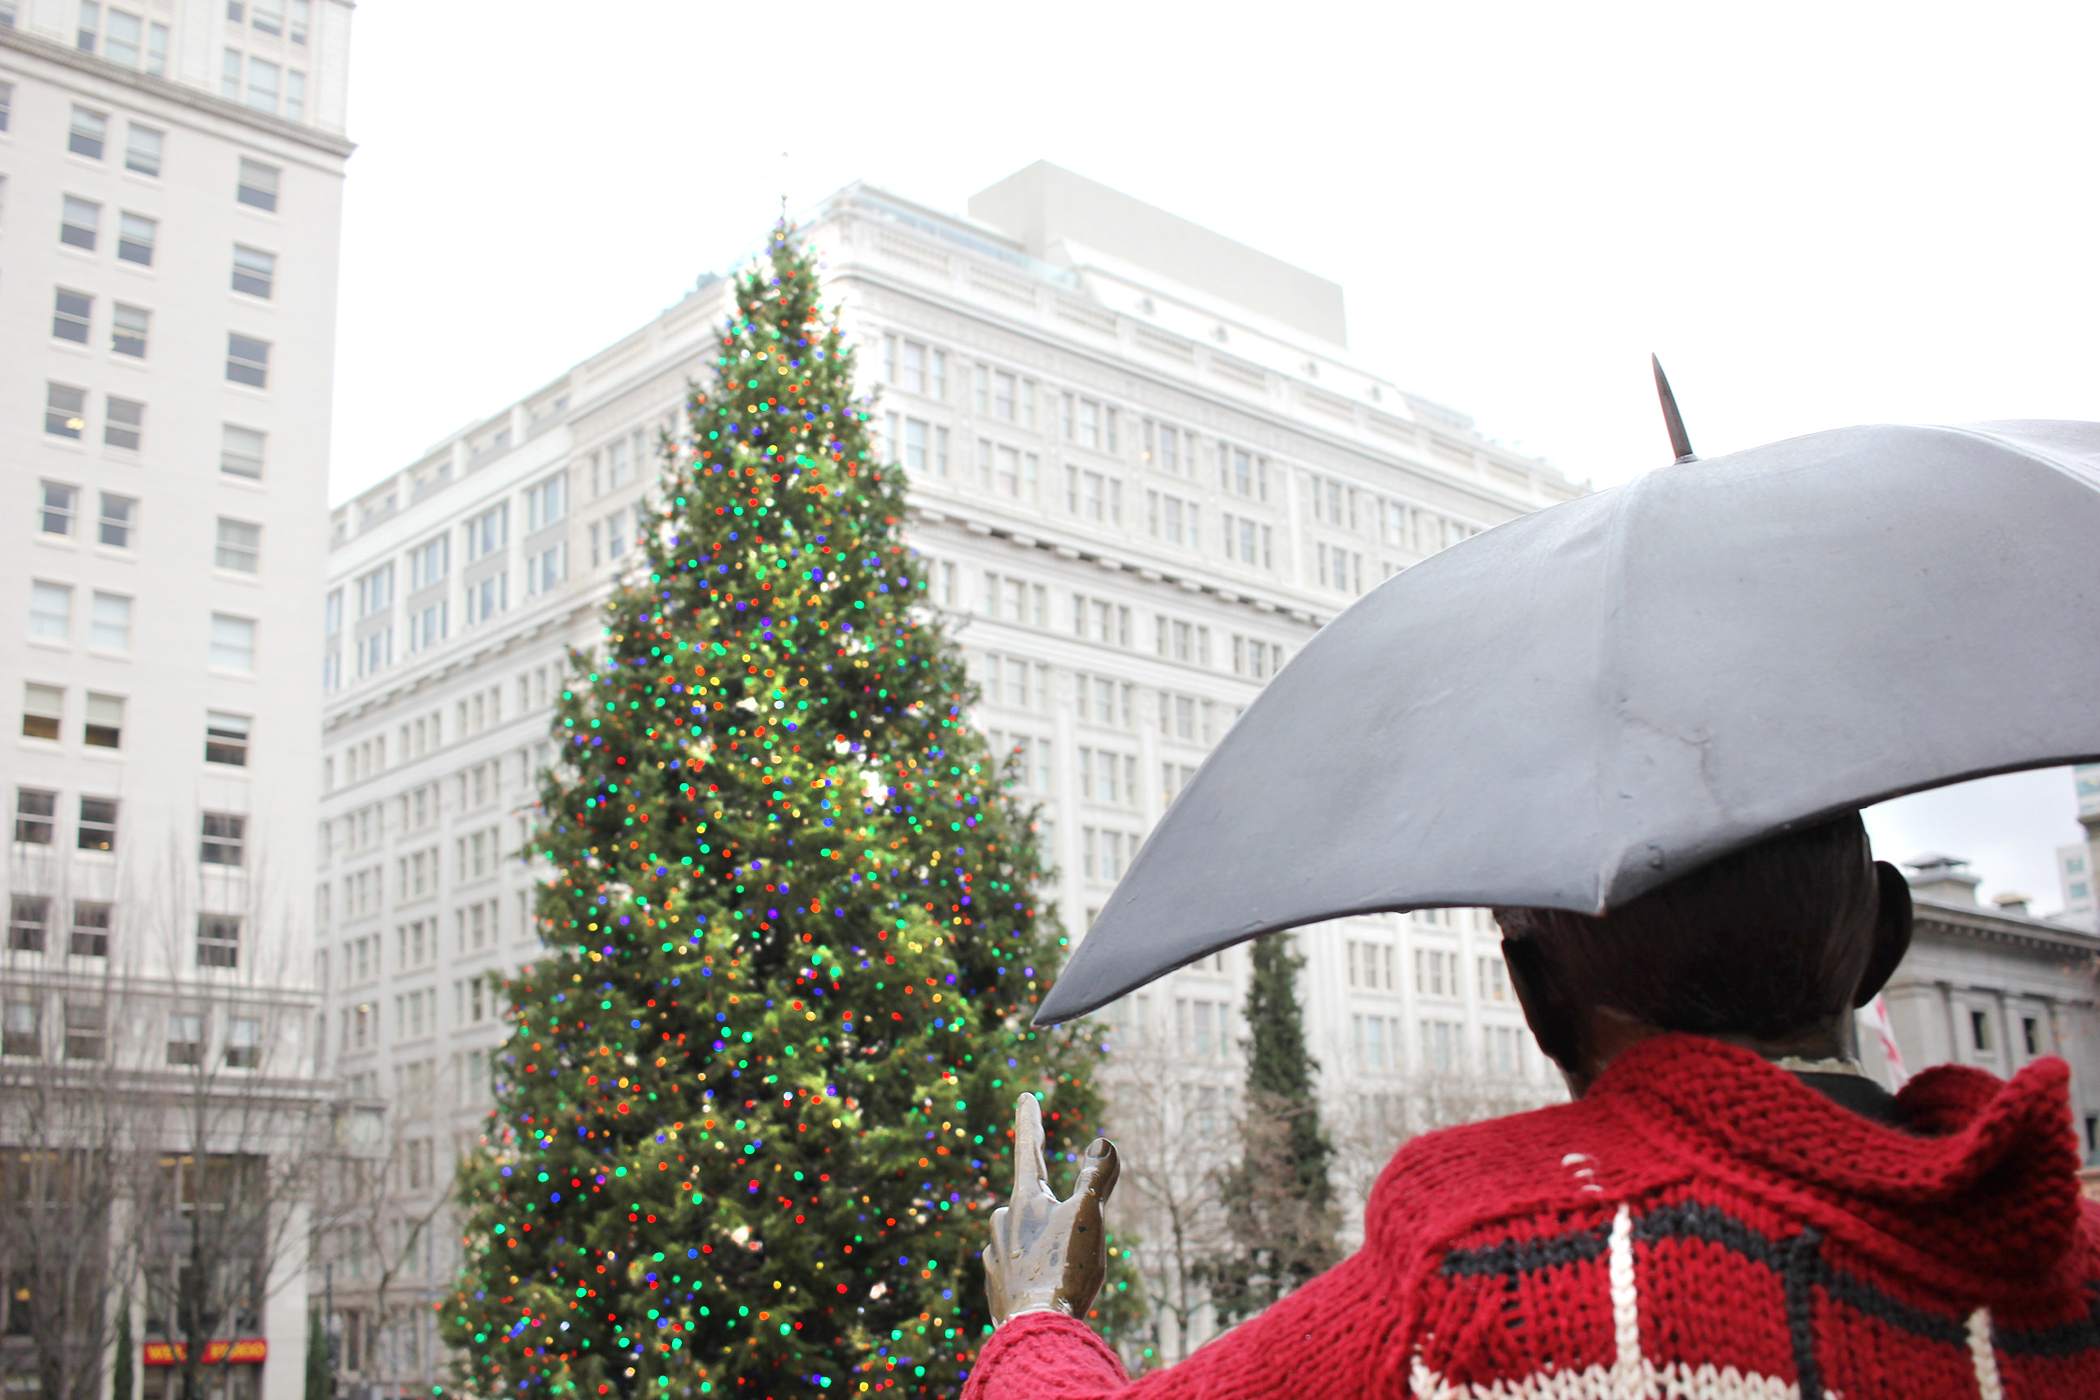 Portland Holiday Events | The Official Guide to Portland